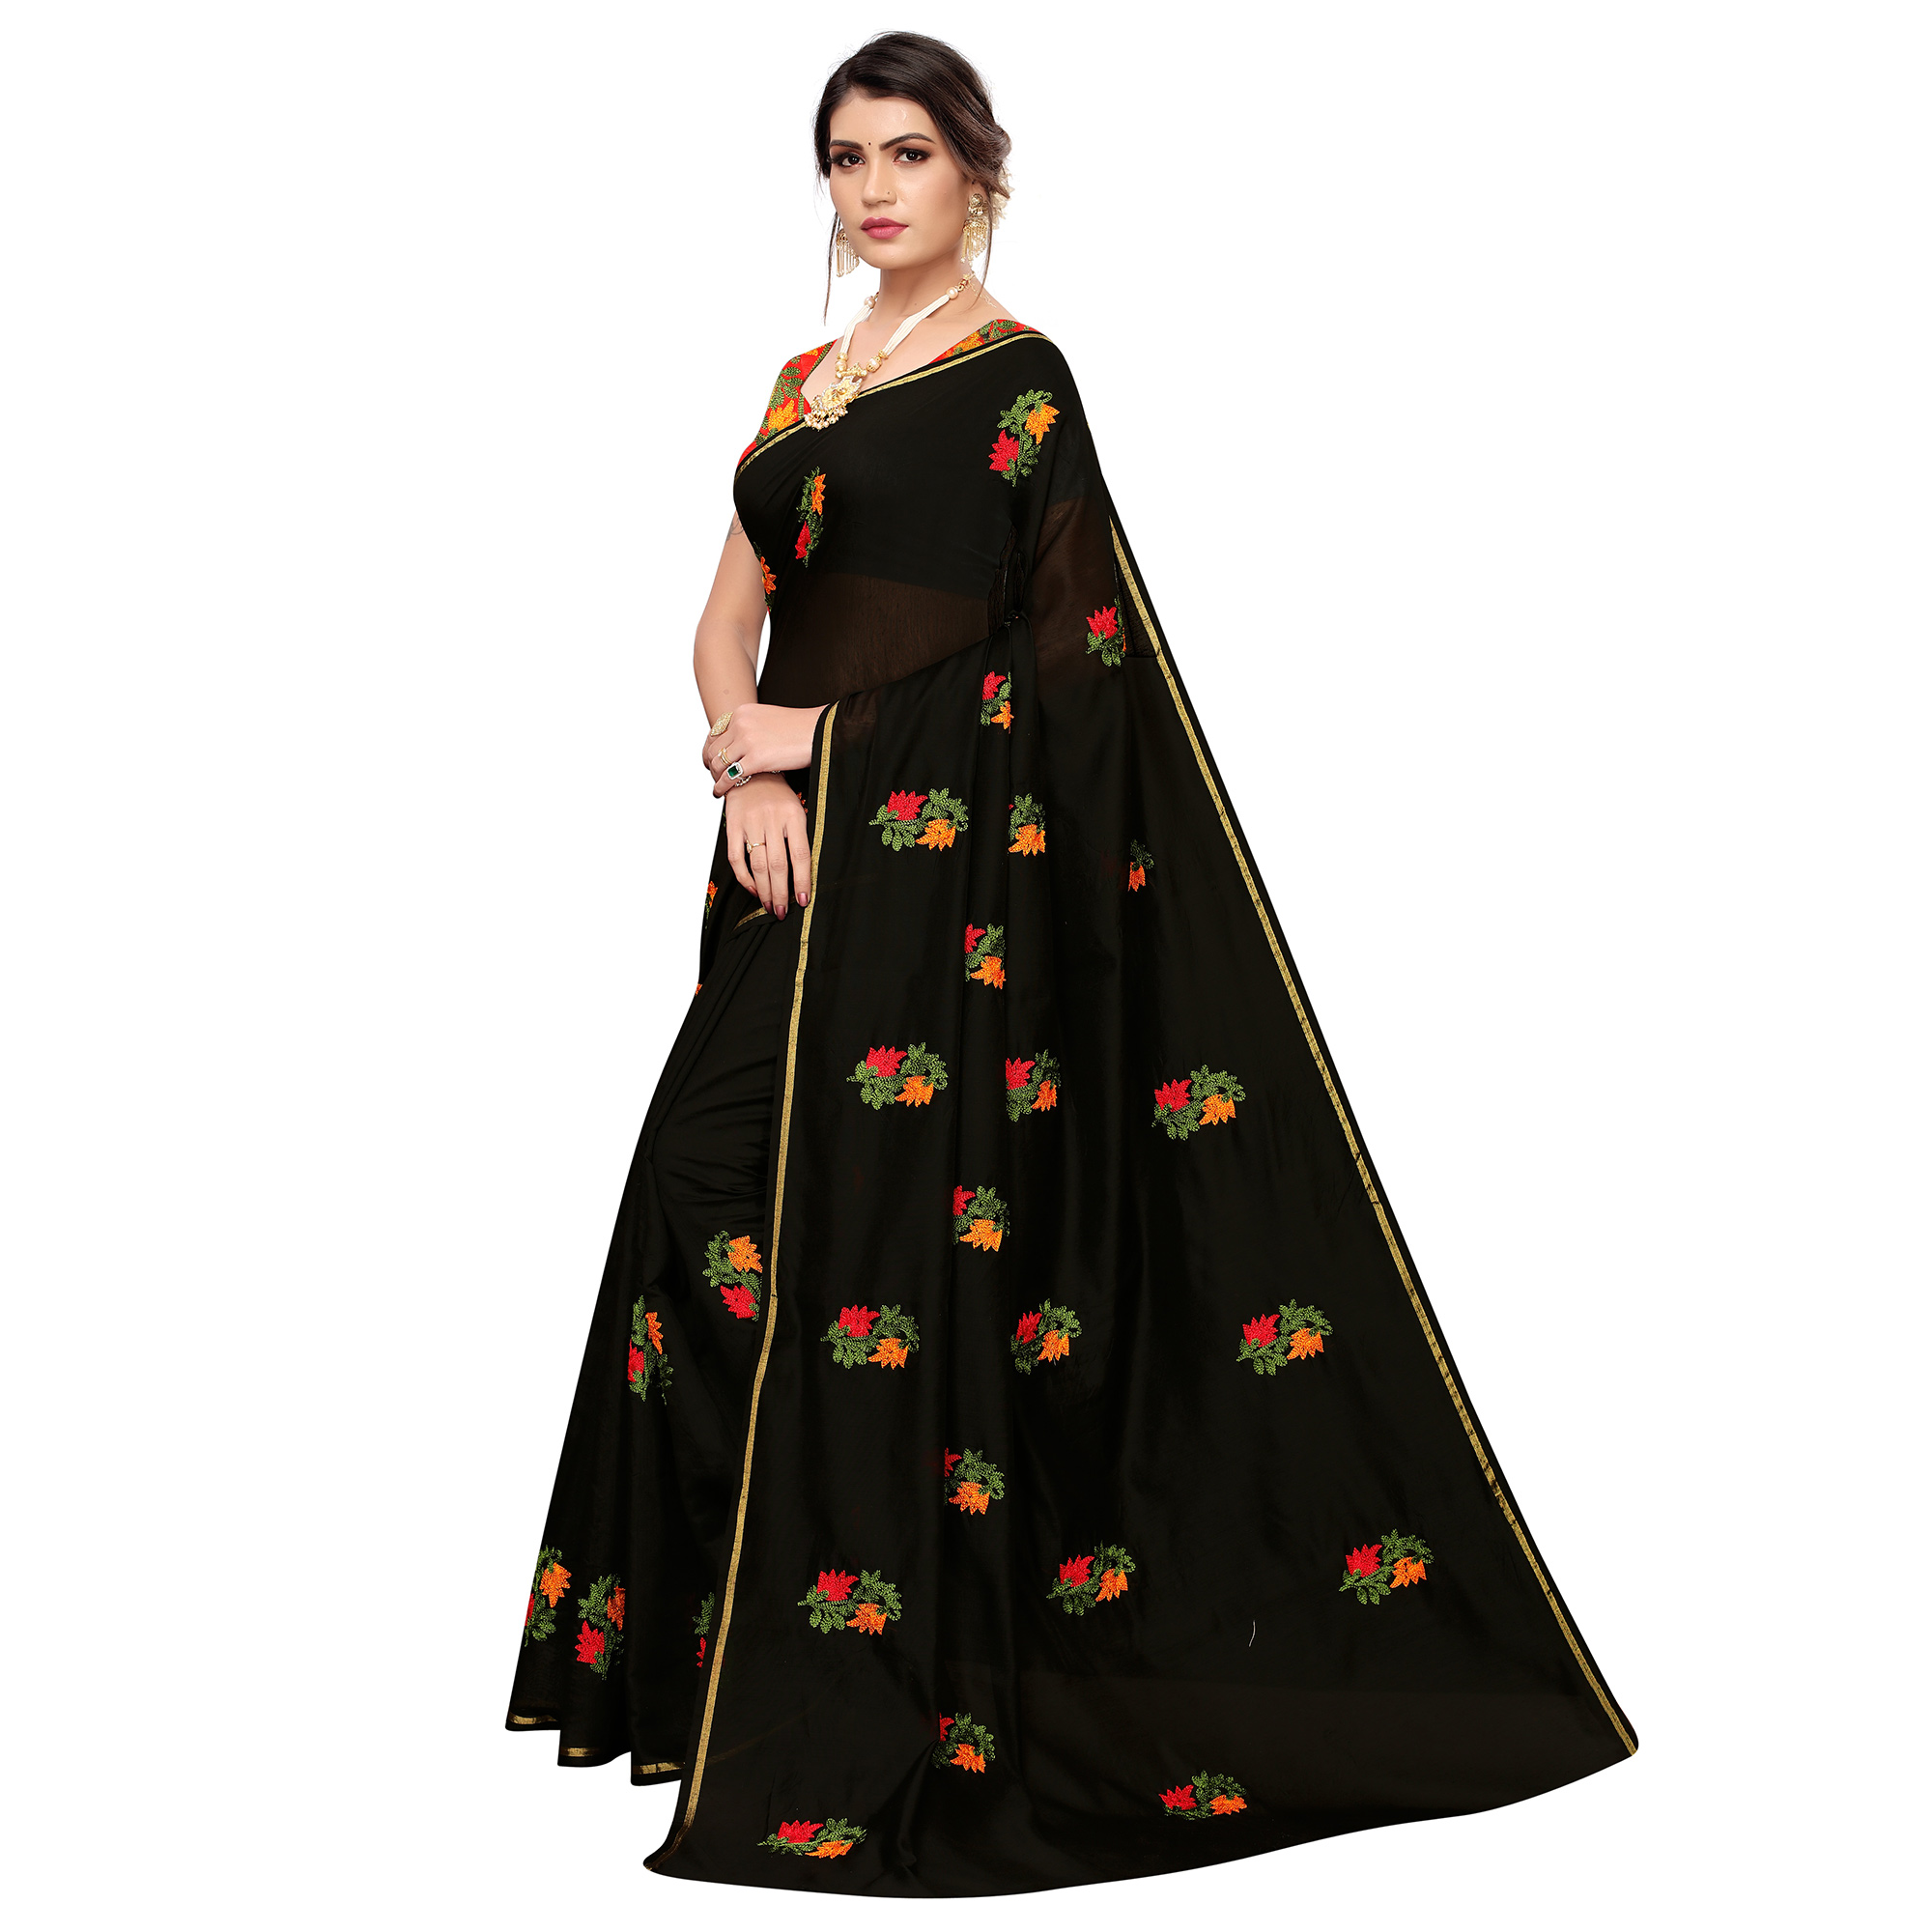 Exceptional Black Colored Party Wear Embroidered Chanderi Saree